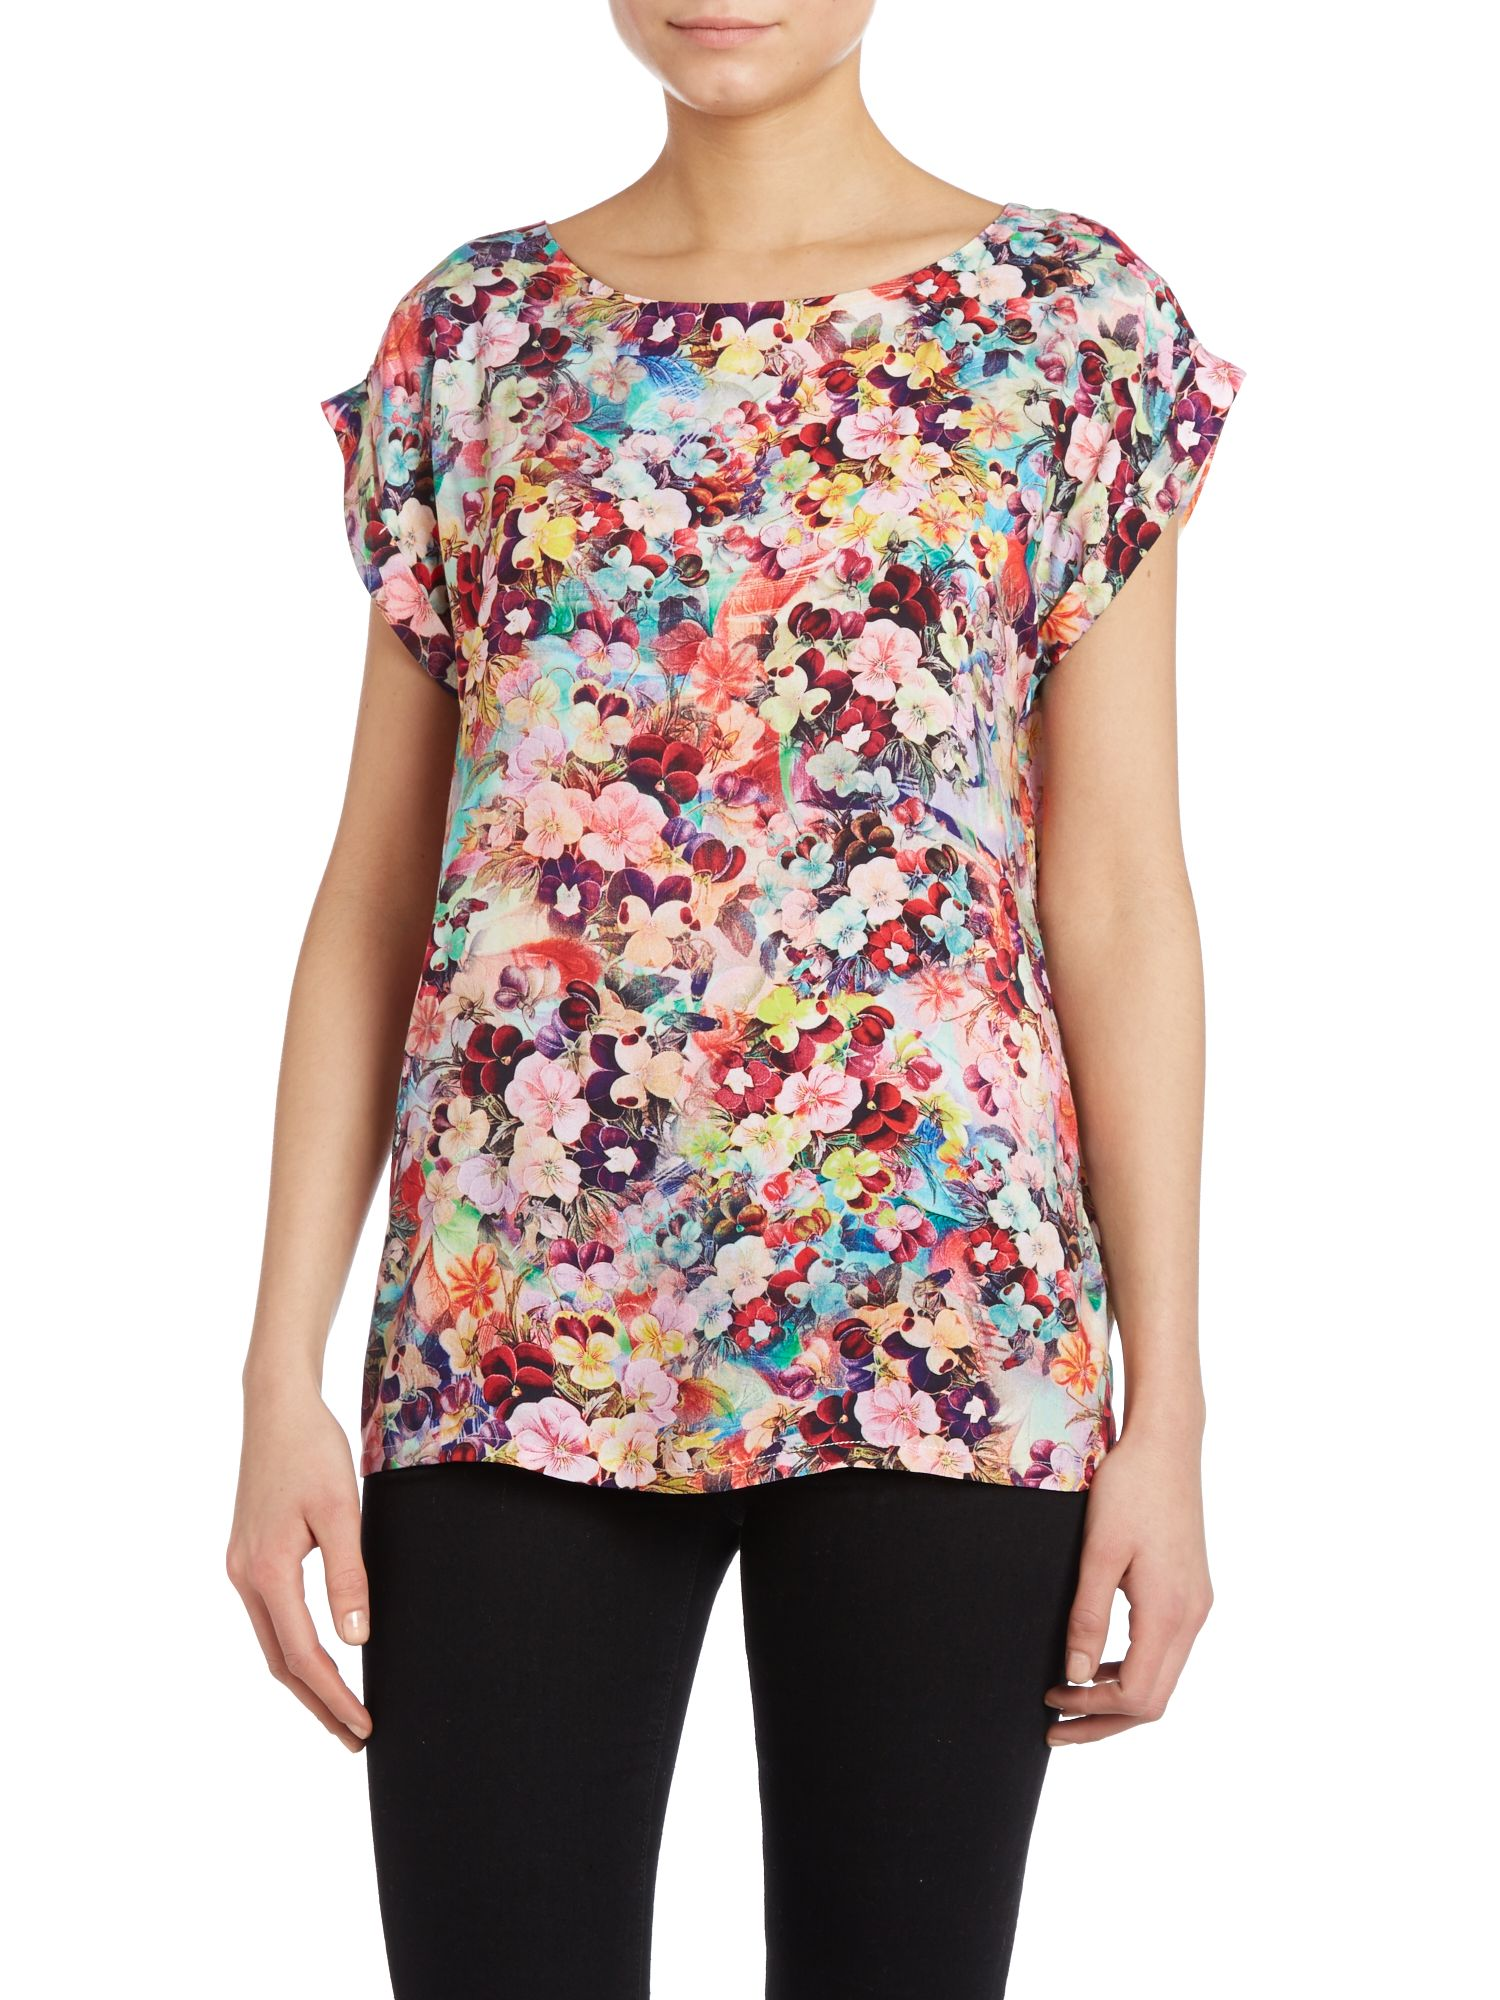 Fluro square print top